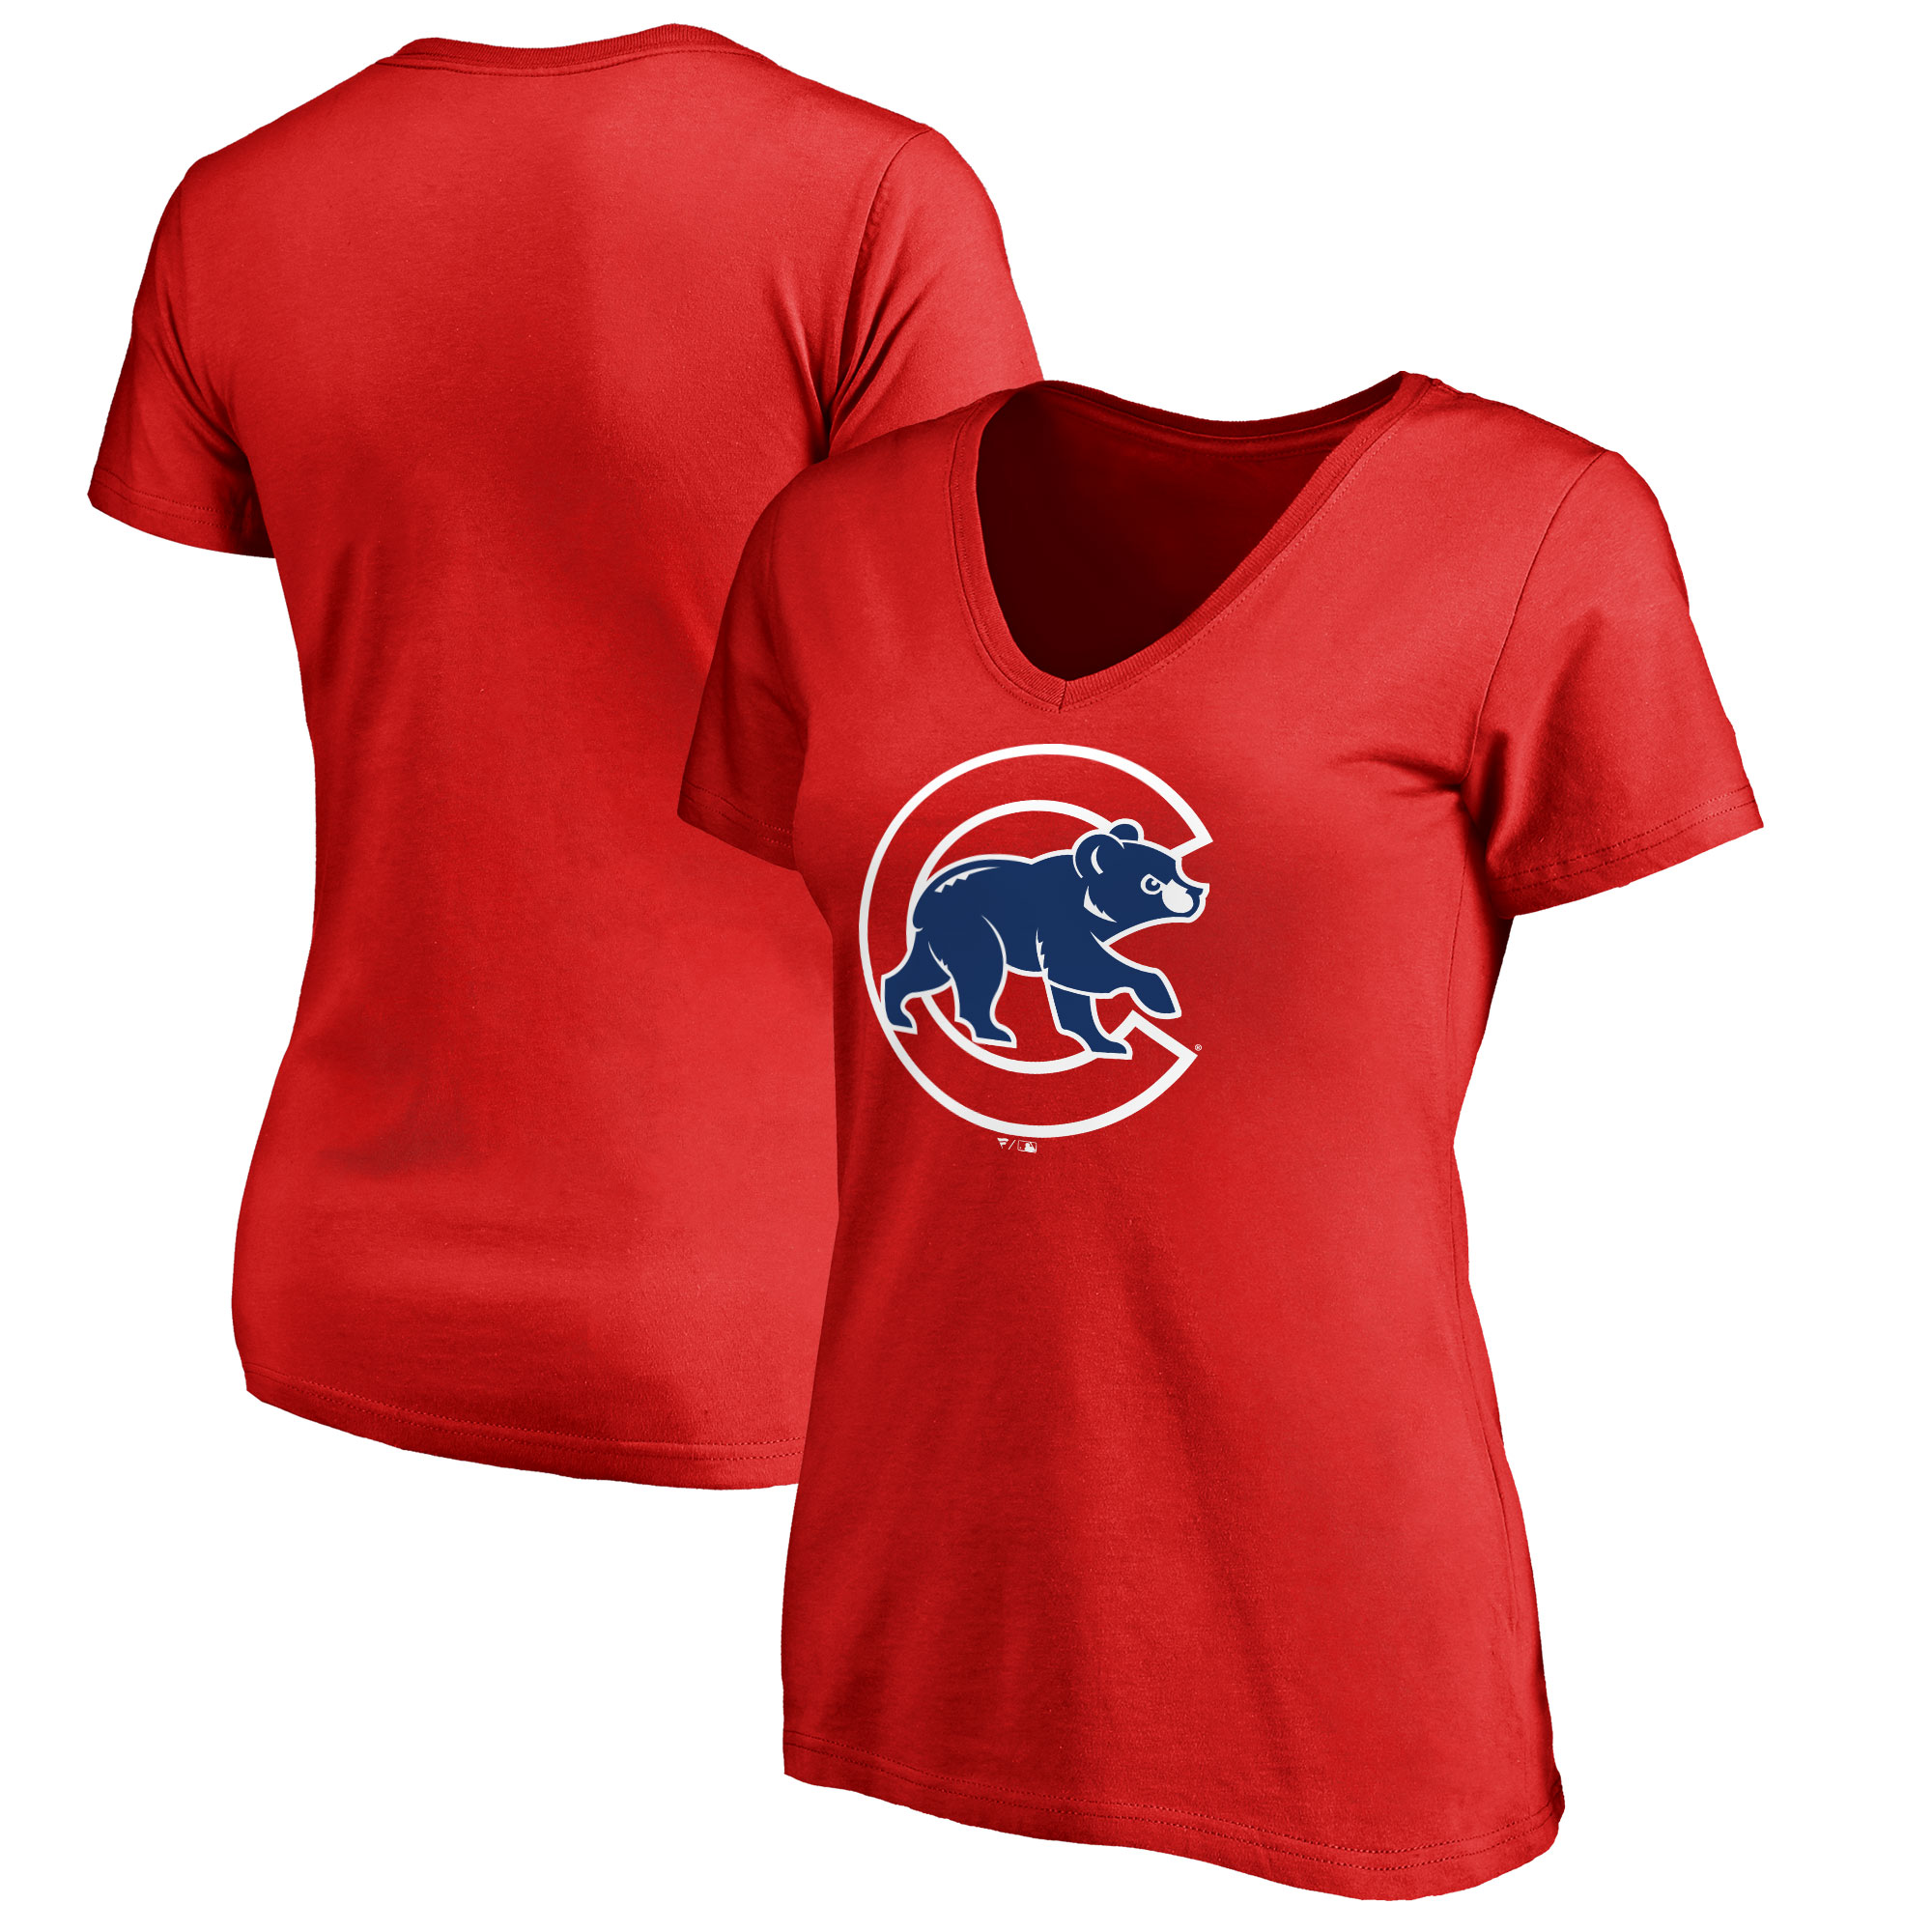 Chicago Cubs Women's Plus Sizes Primary Team Logo T-Shirt - Red